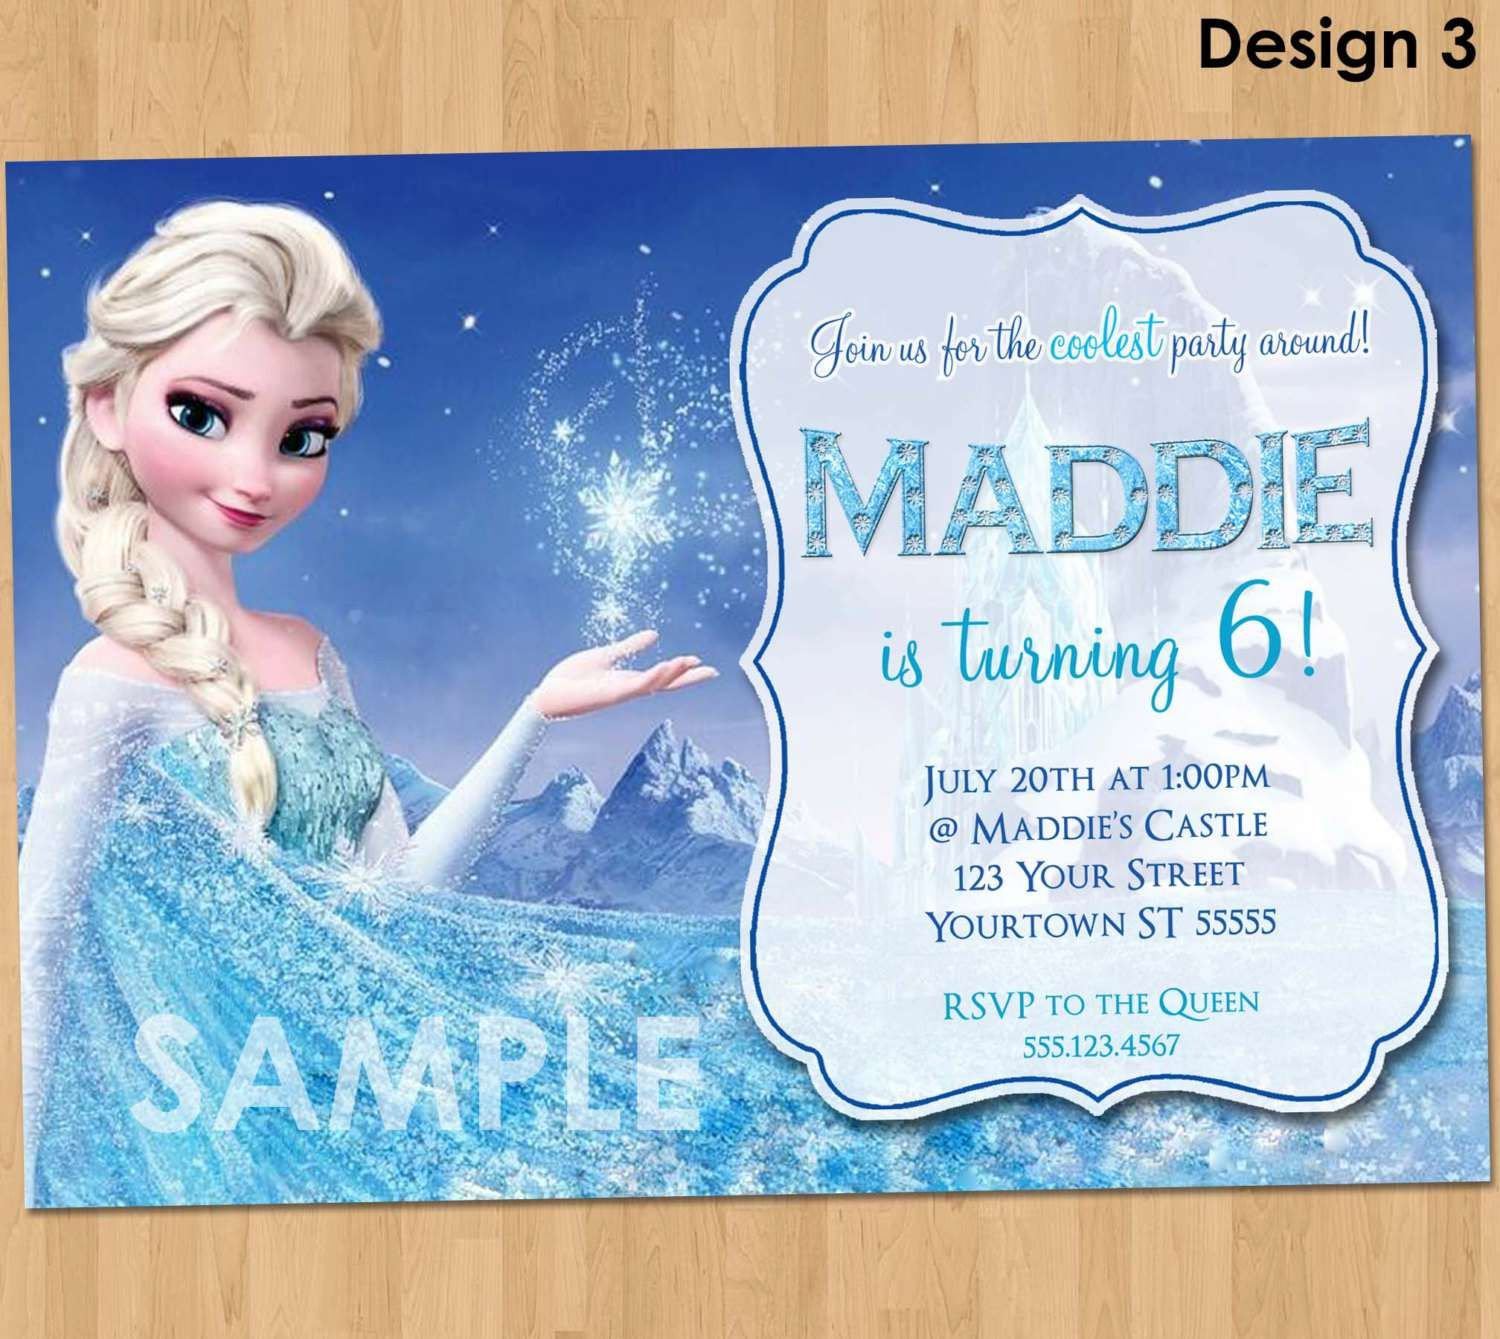 Image for frozen birthday party invitations cards amazon little image for frozen birthday party invitations cards amazon filmwisefo